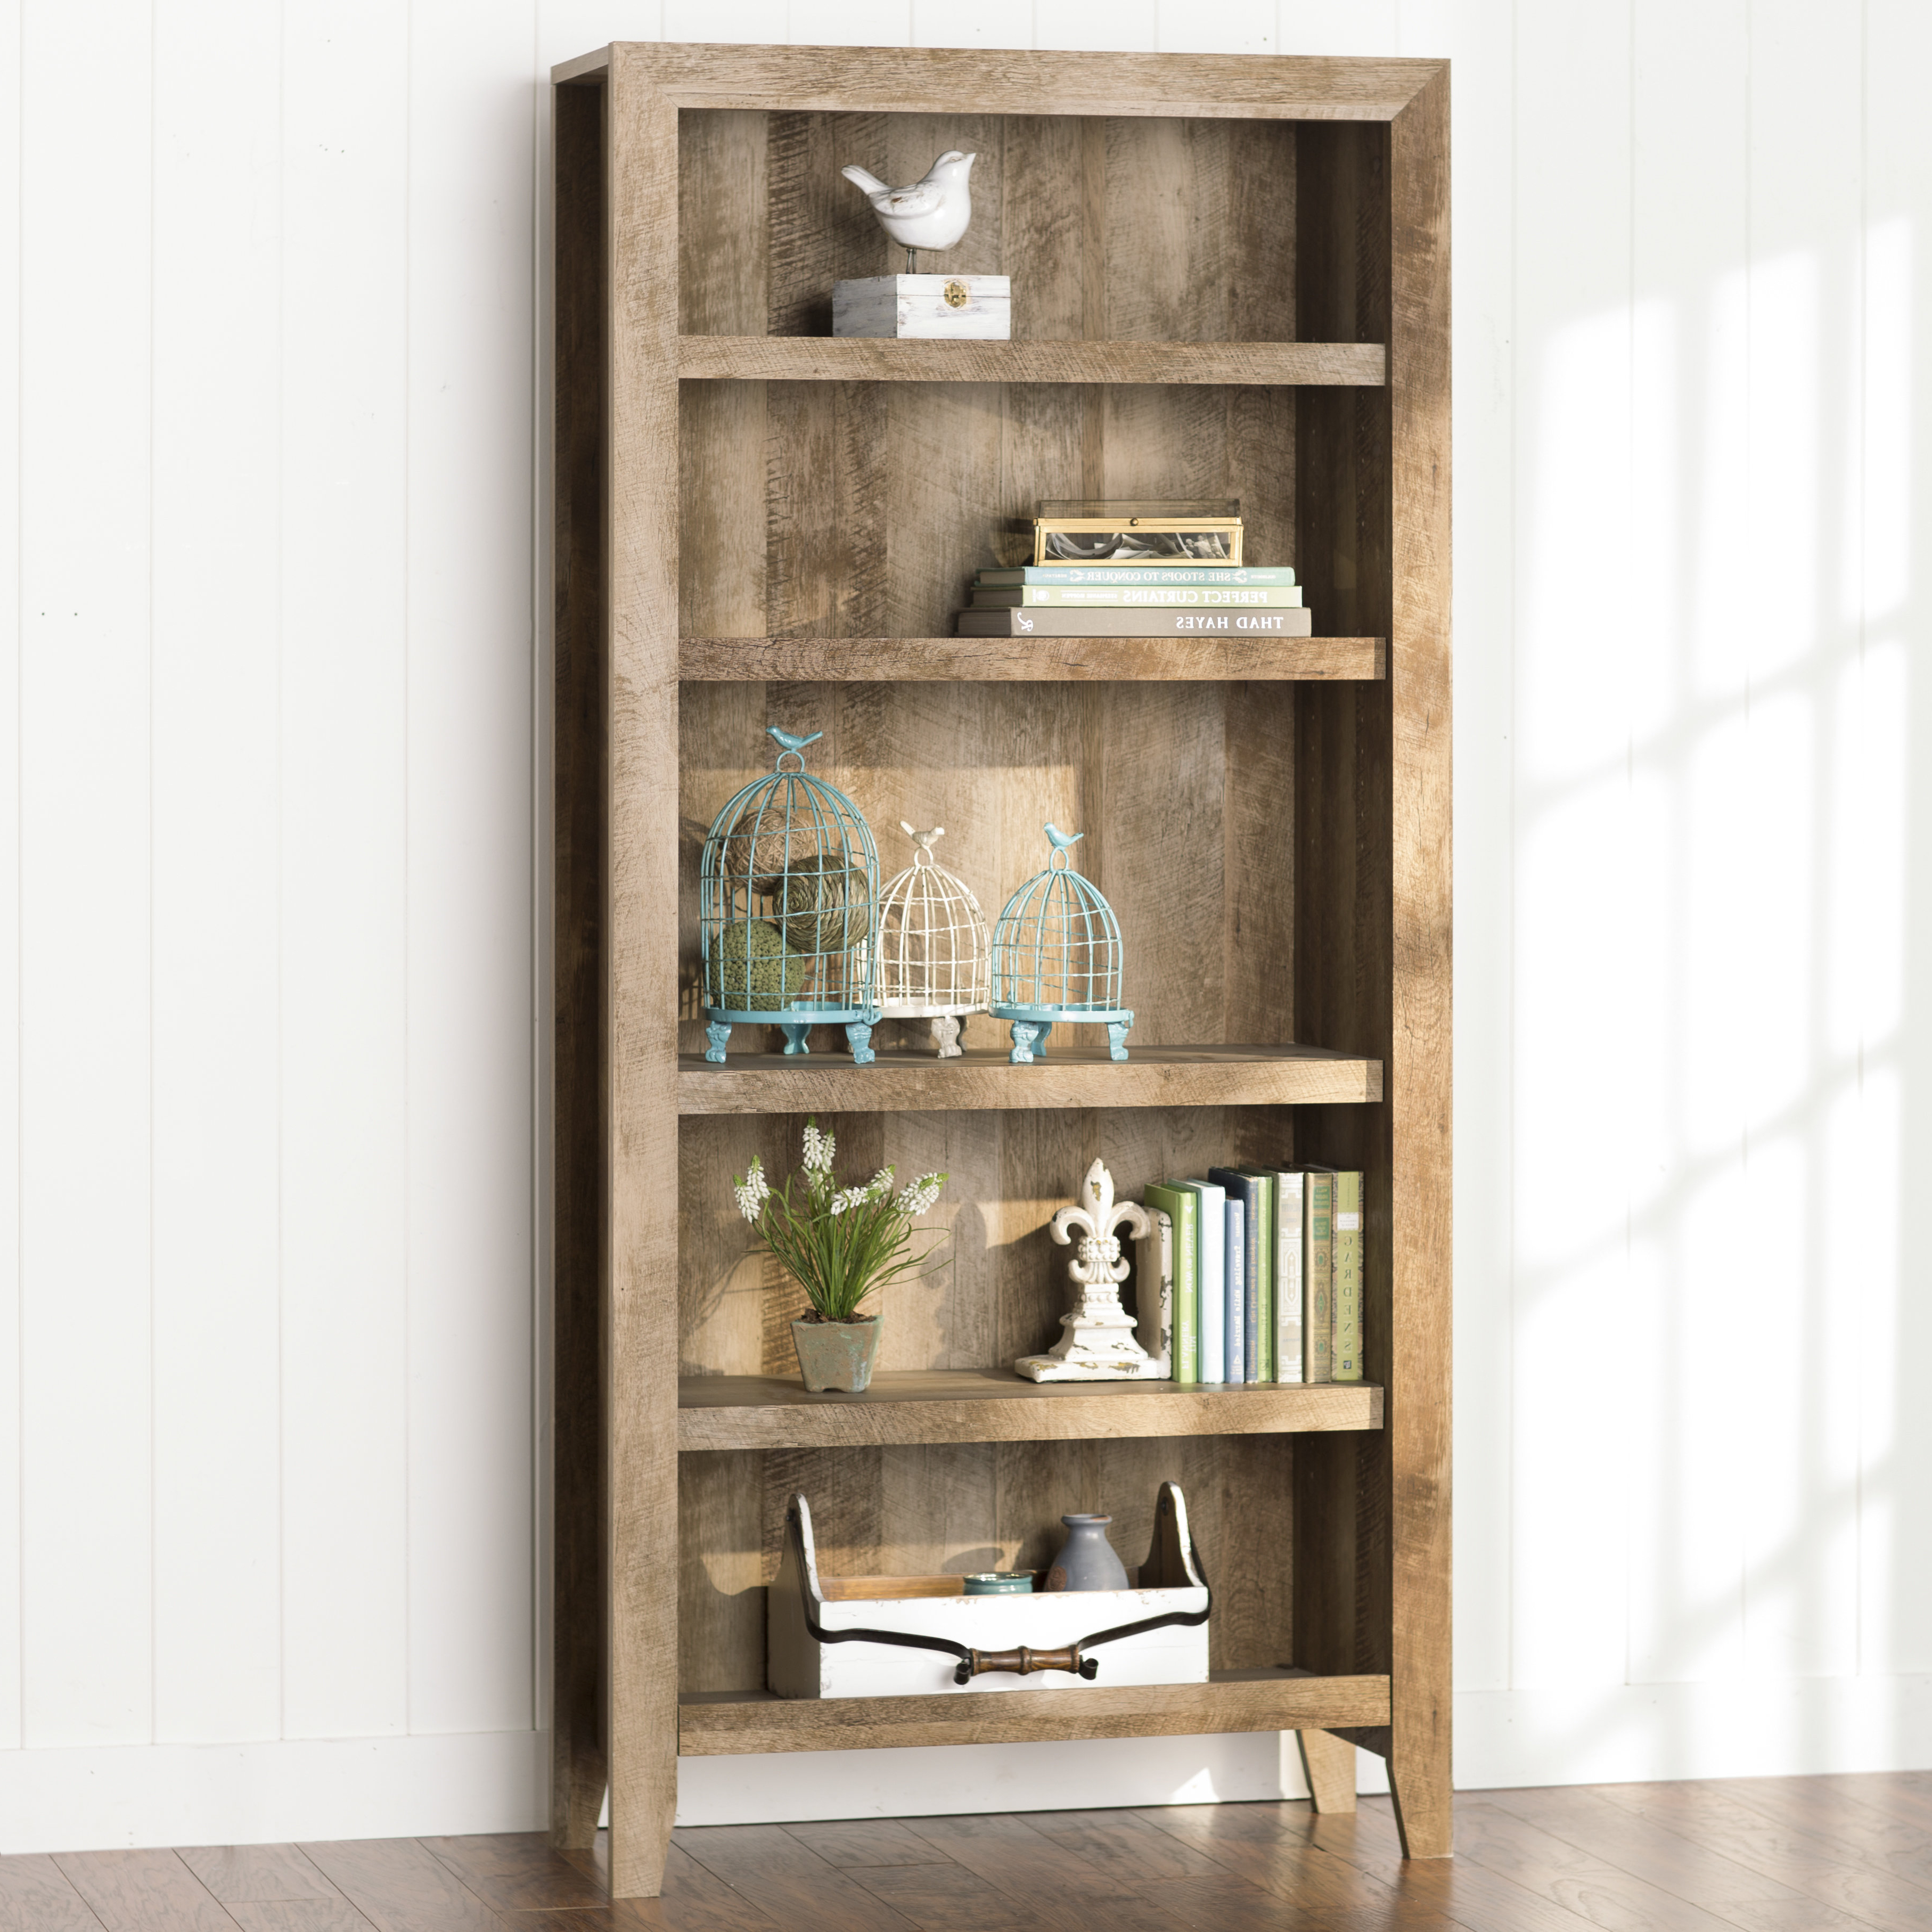 Orford Standard Bookcase With Regard To Most Current Orford Standard Bookcases (View 2 of 20)